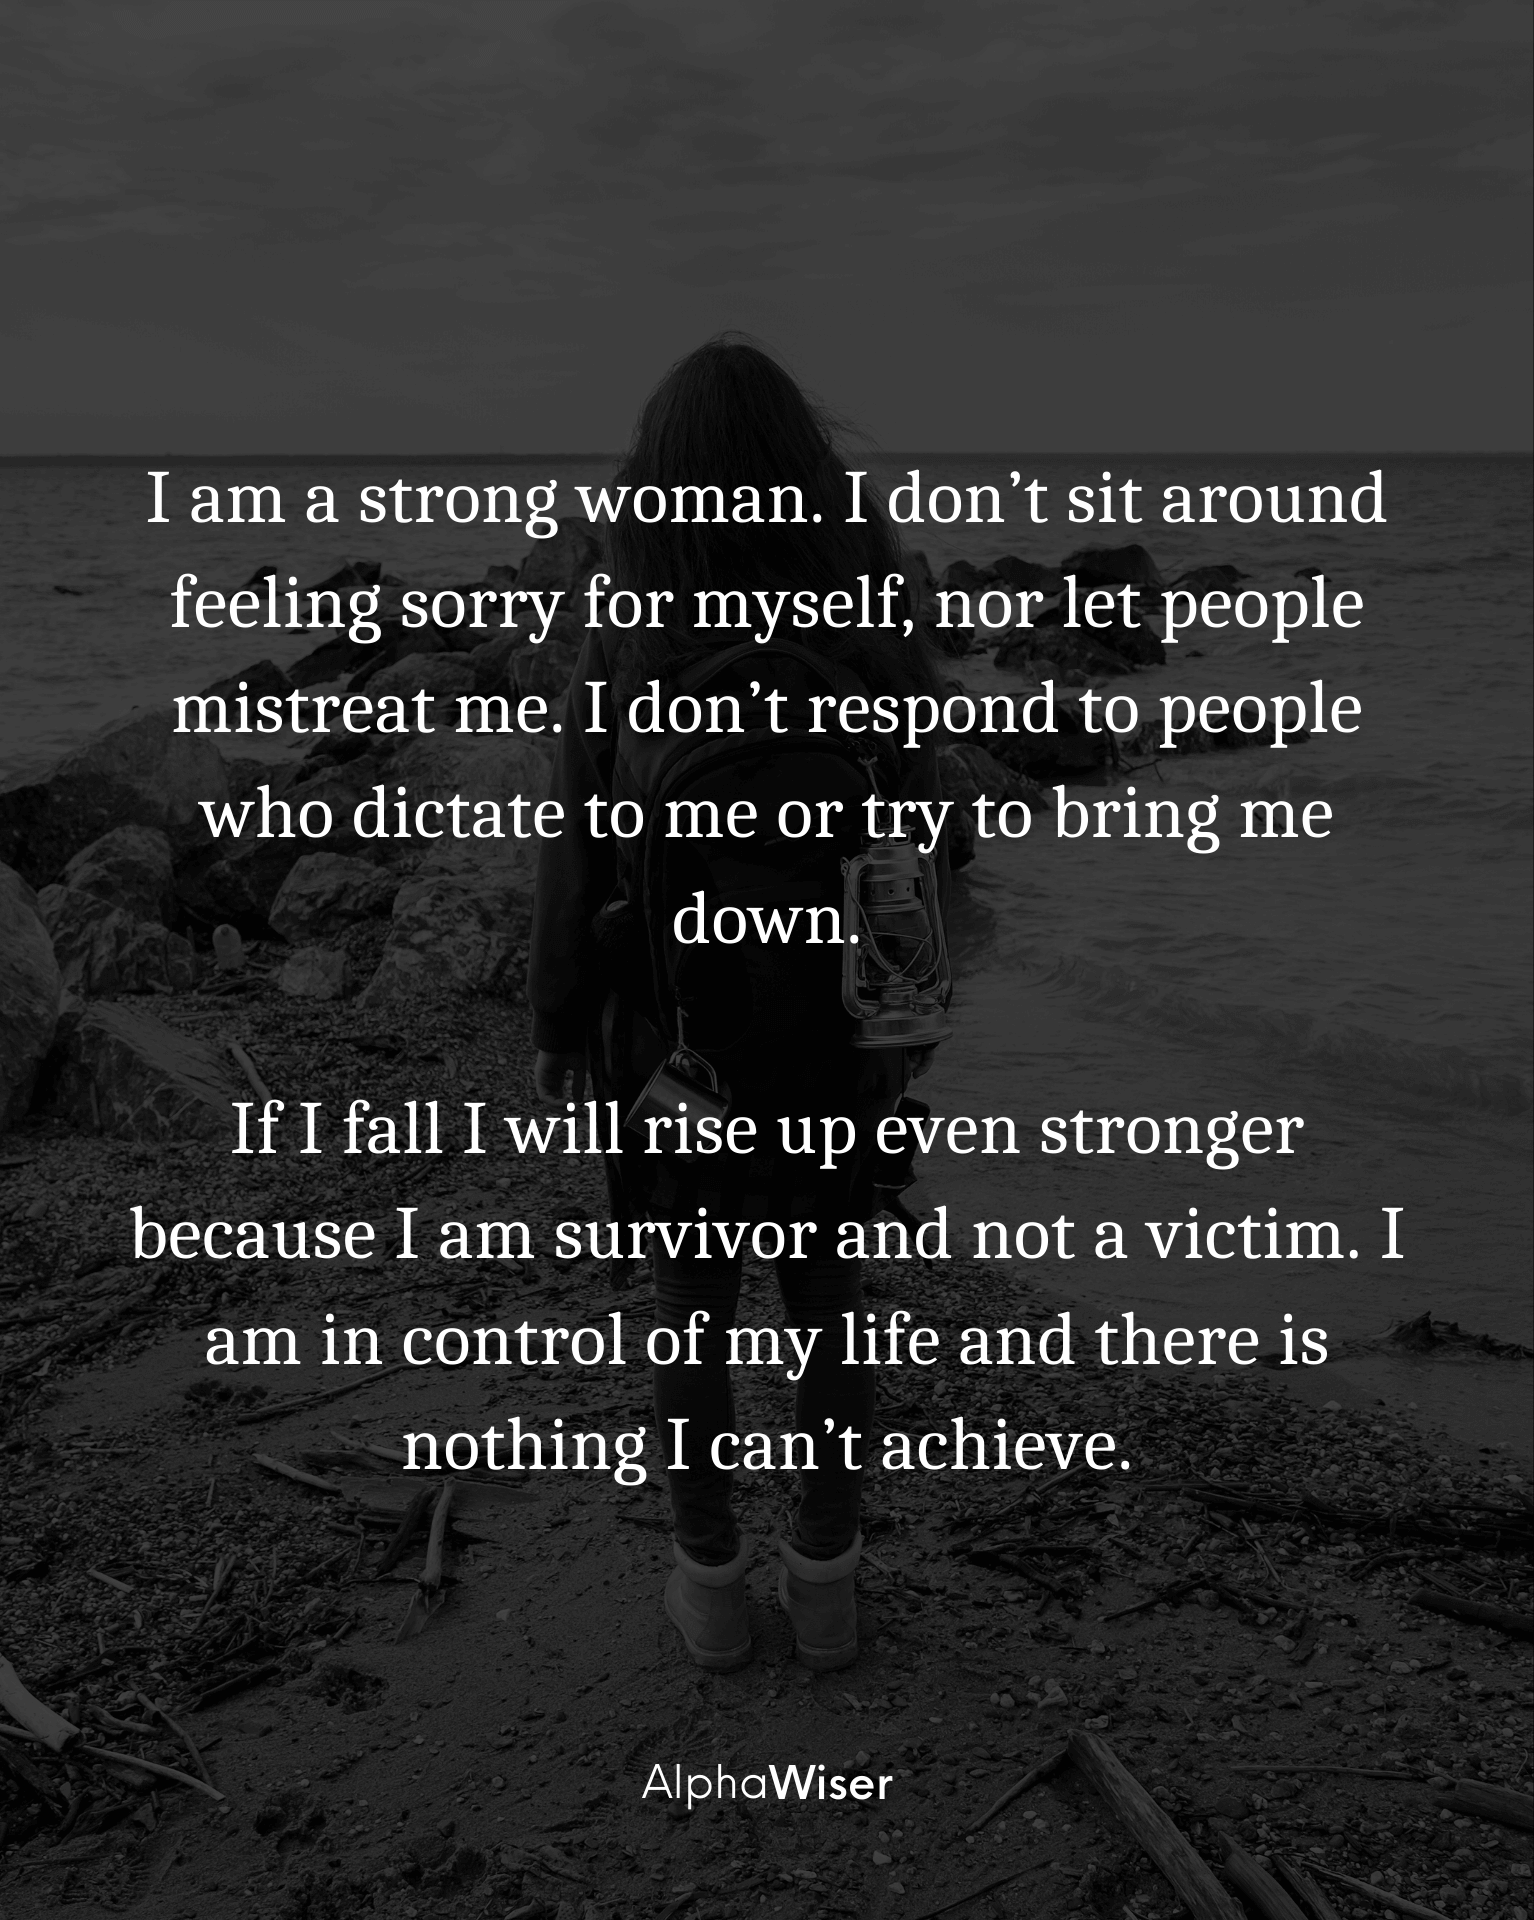 I am a strong woman. I don't sit around feeling sorry for myself, nor let people mistreat me. I don't respond to people who dictate to me or try to bring me down.